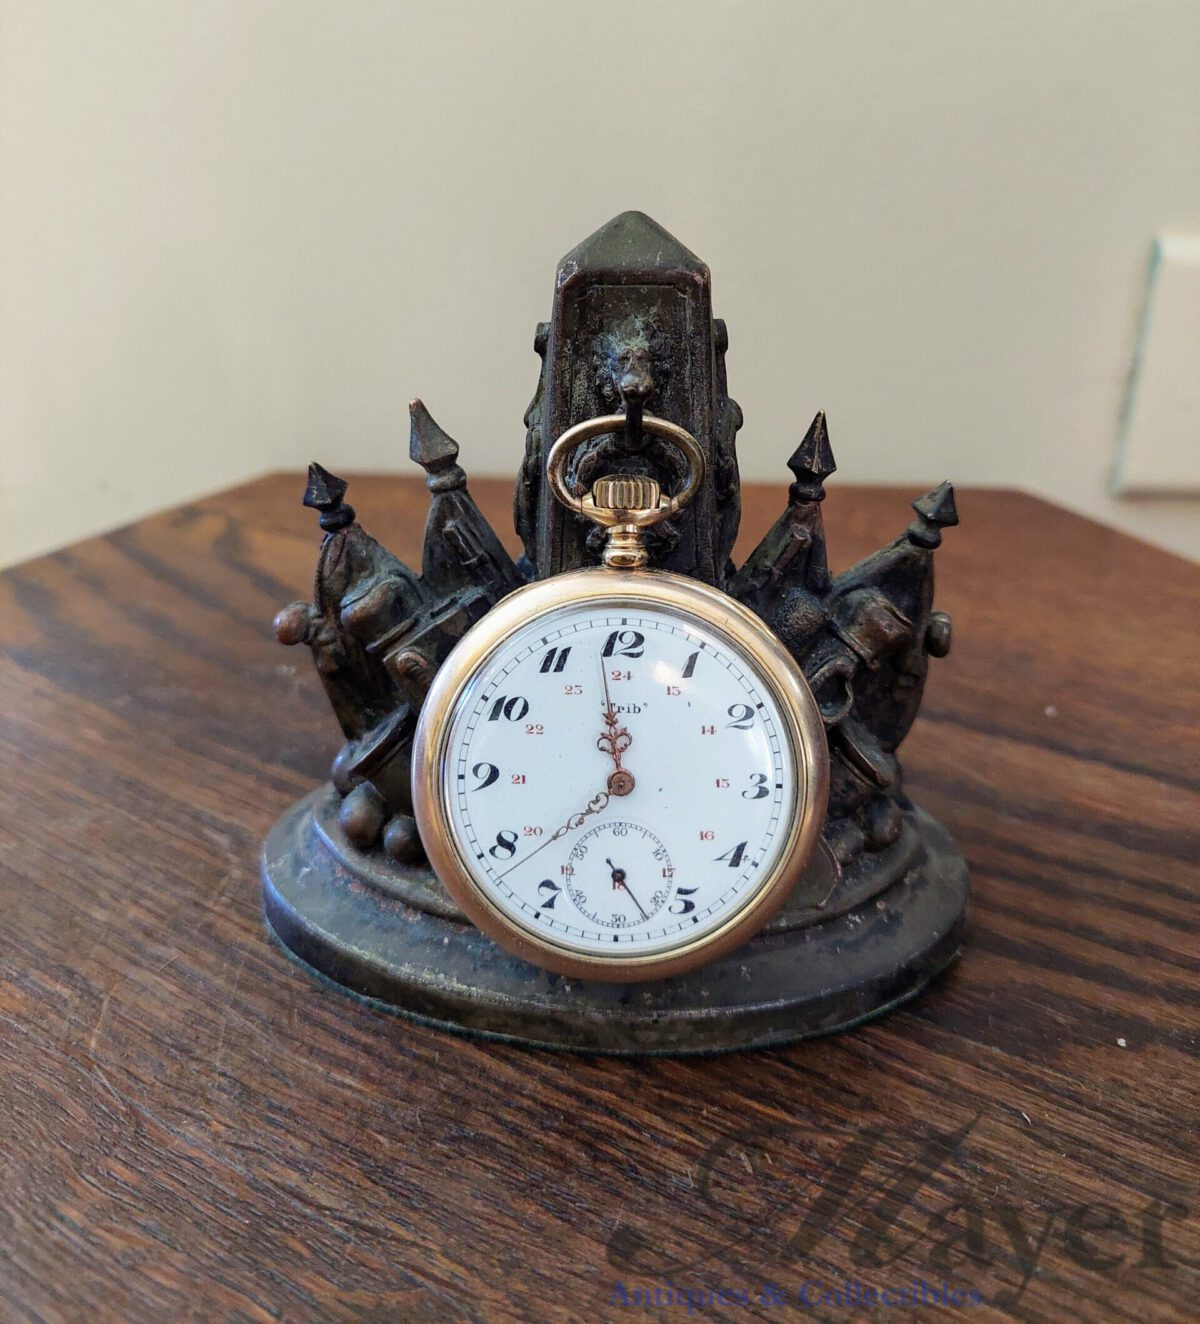 French Trib pocket watch and a Prussian display stand commemorating the Franco-Prussian War of 1870-1871